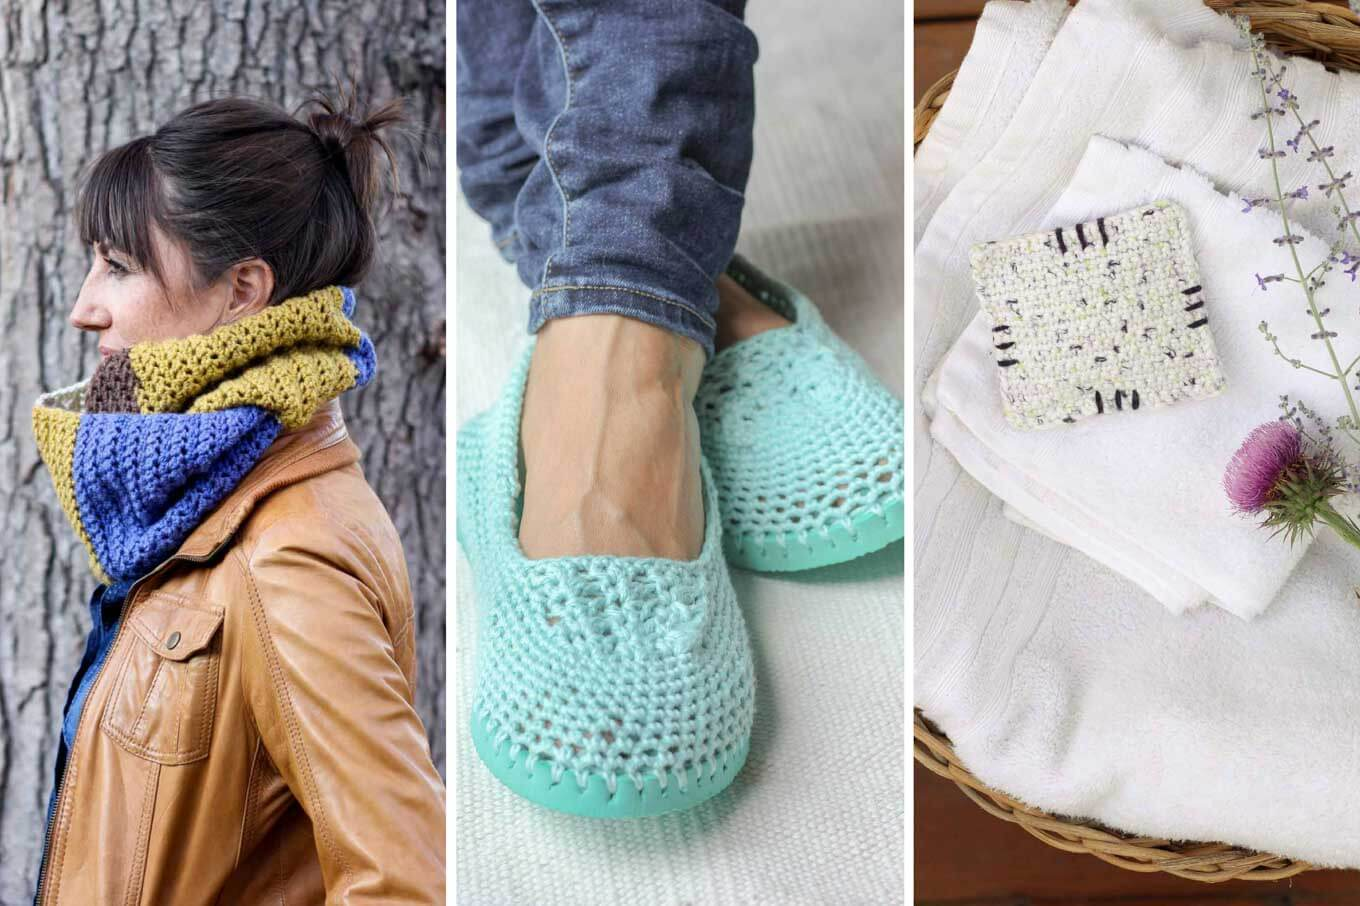 crochet gifts these modern crochet gift ideas can all be make for under $5, which qbfpkkq